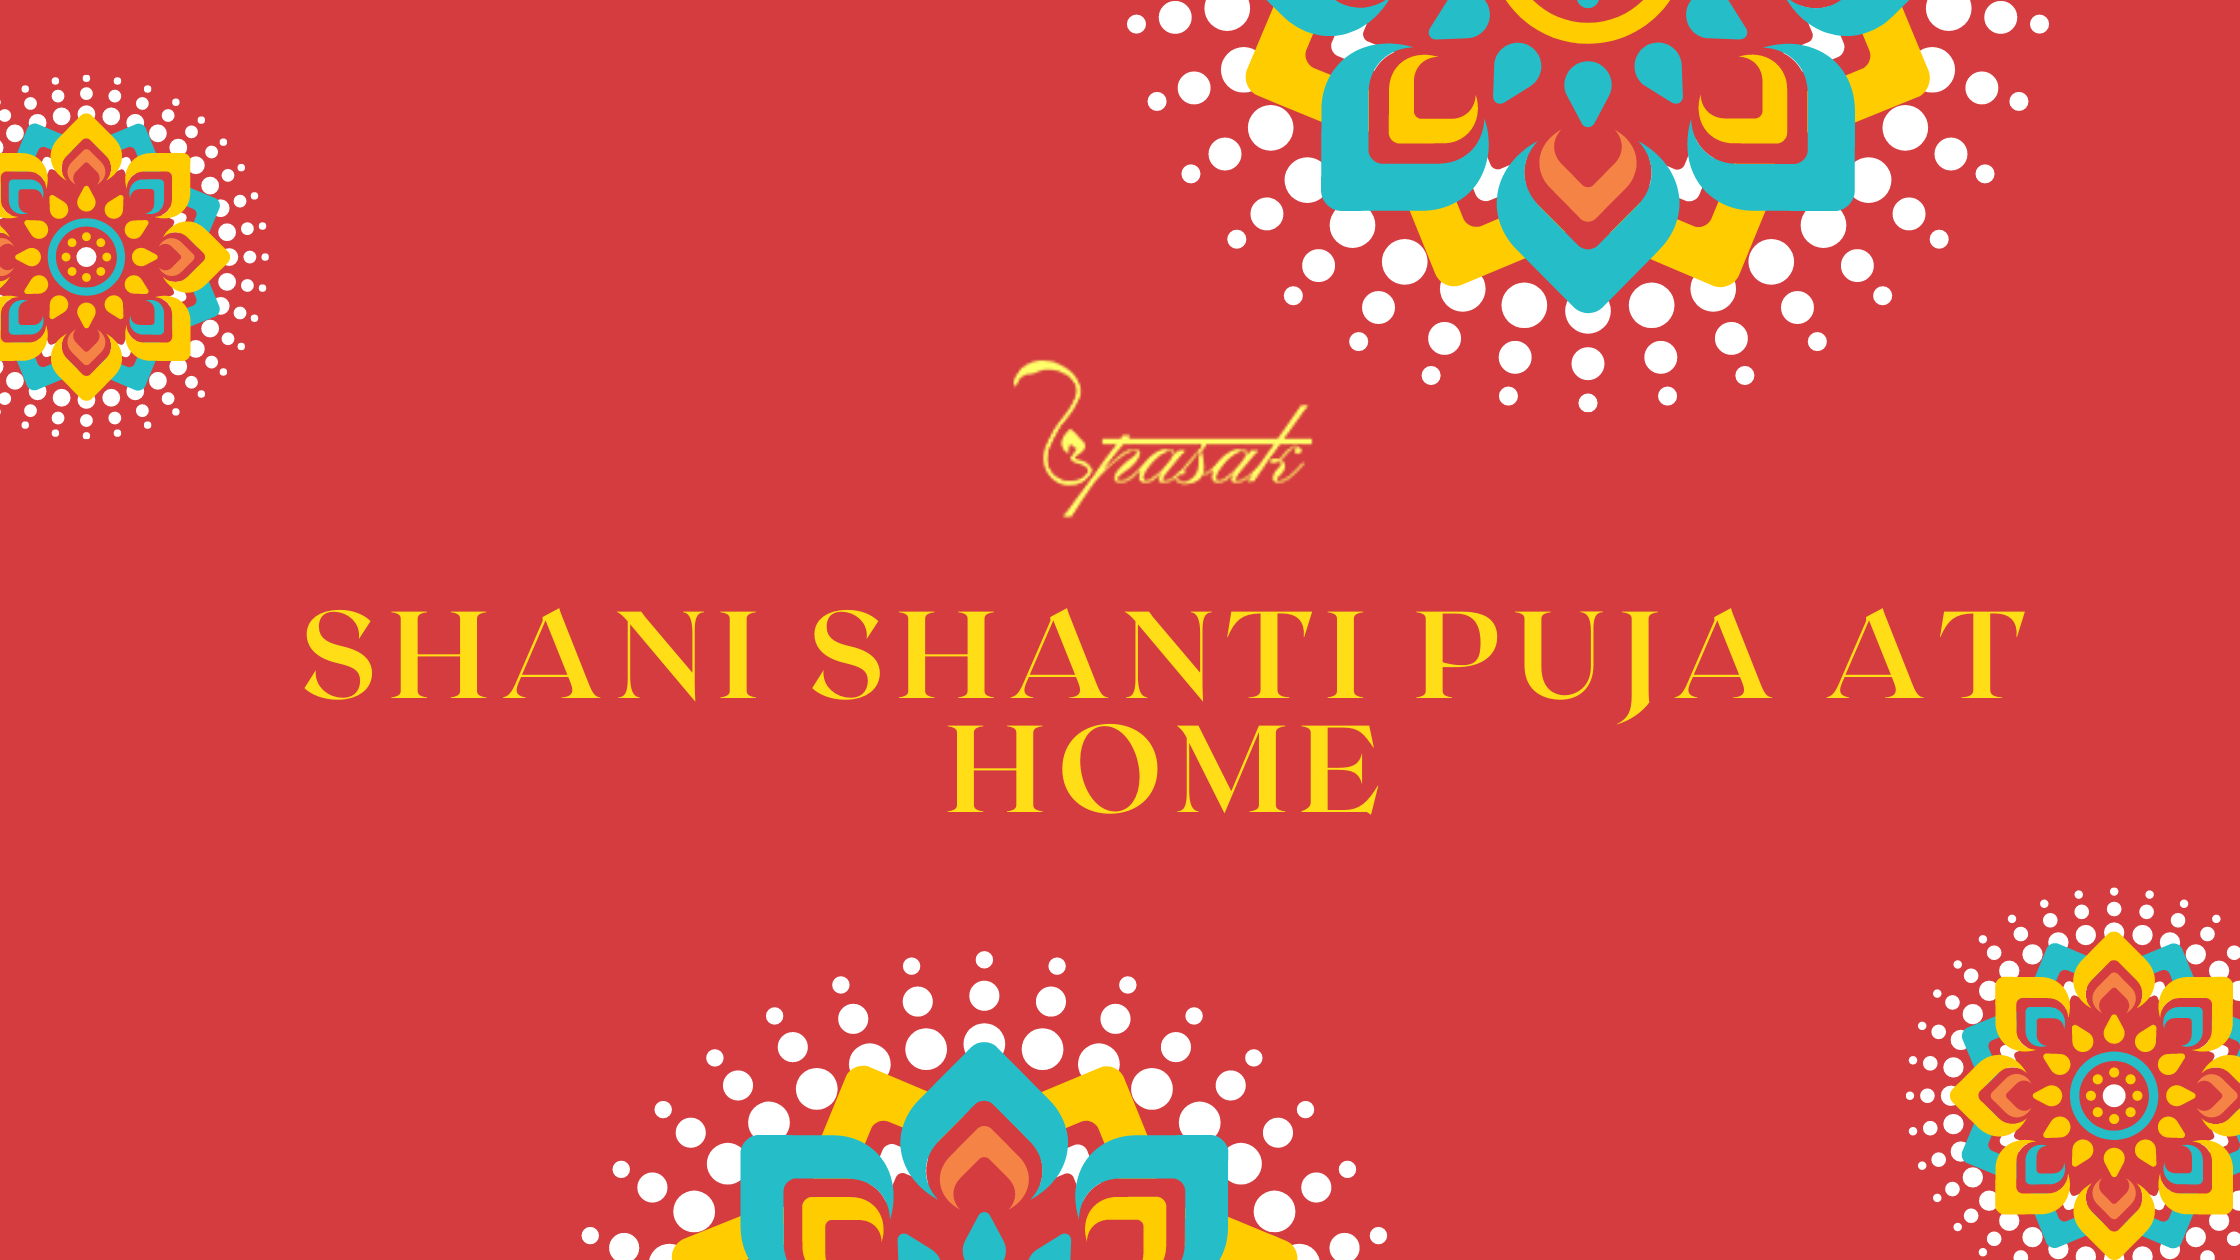 Shani Shanti Puja at Home